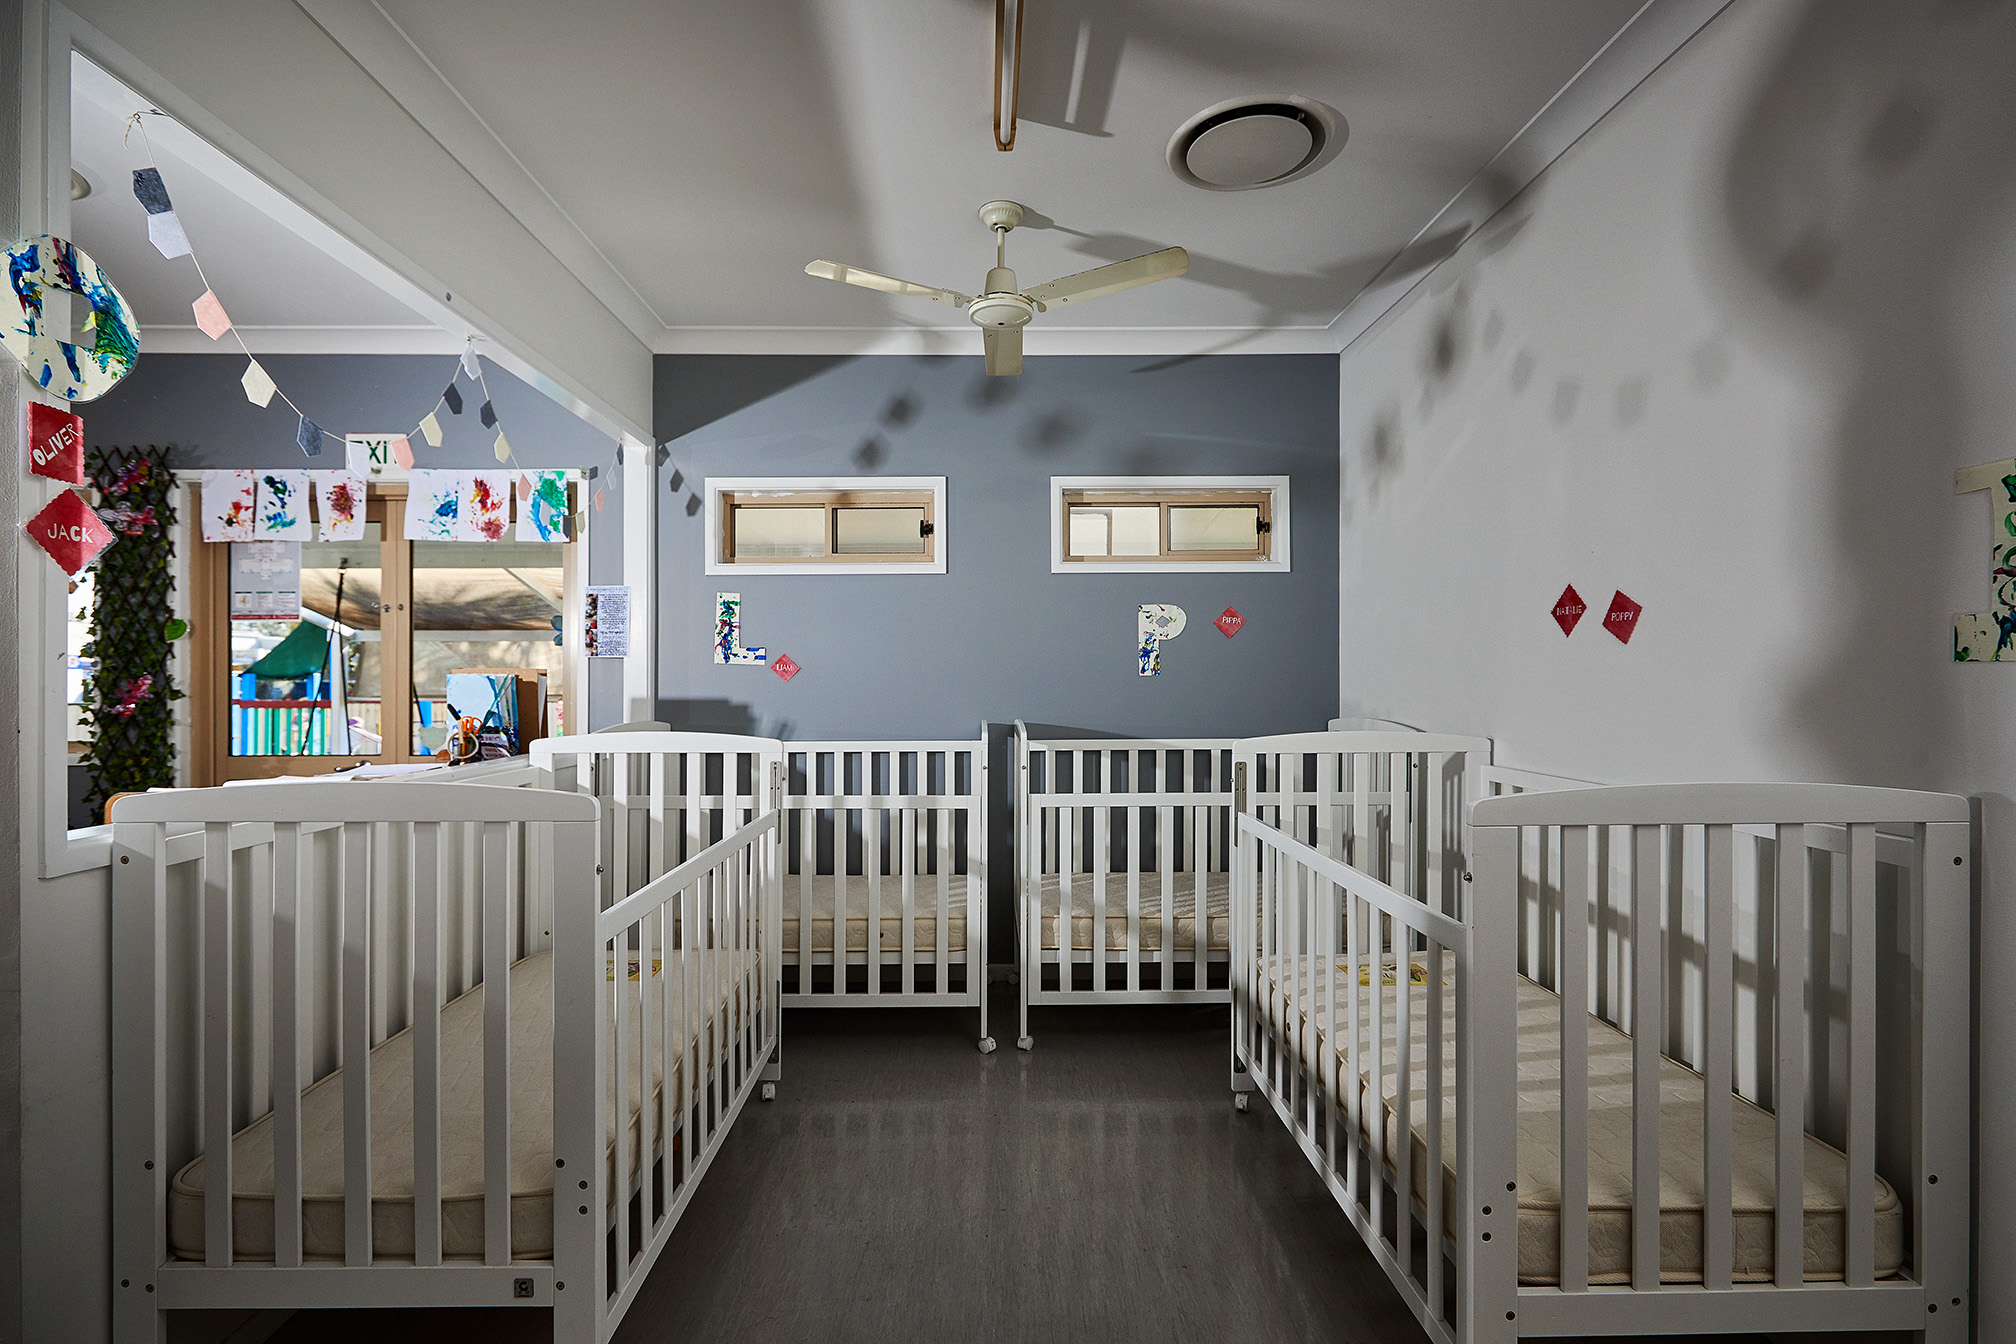 A nursery room with 4 baby cots in view